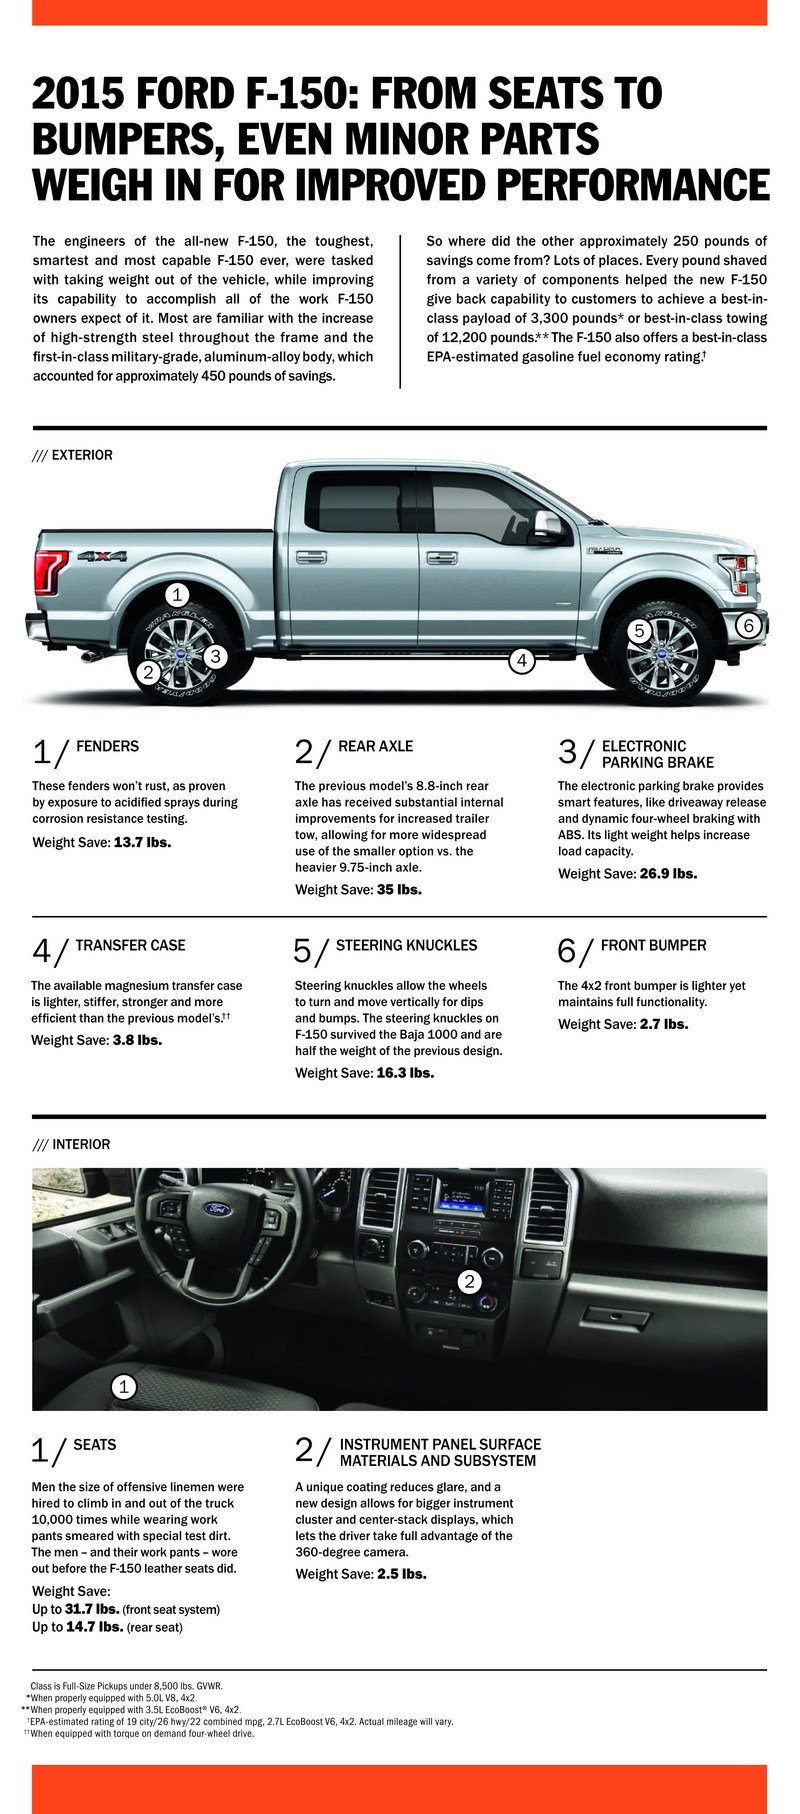 2015 Ford F-150 Weight Infographic: Trimming the Pounds - image 625613